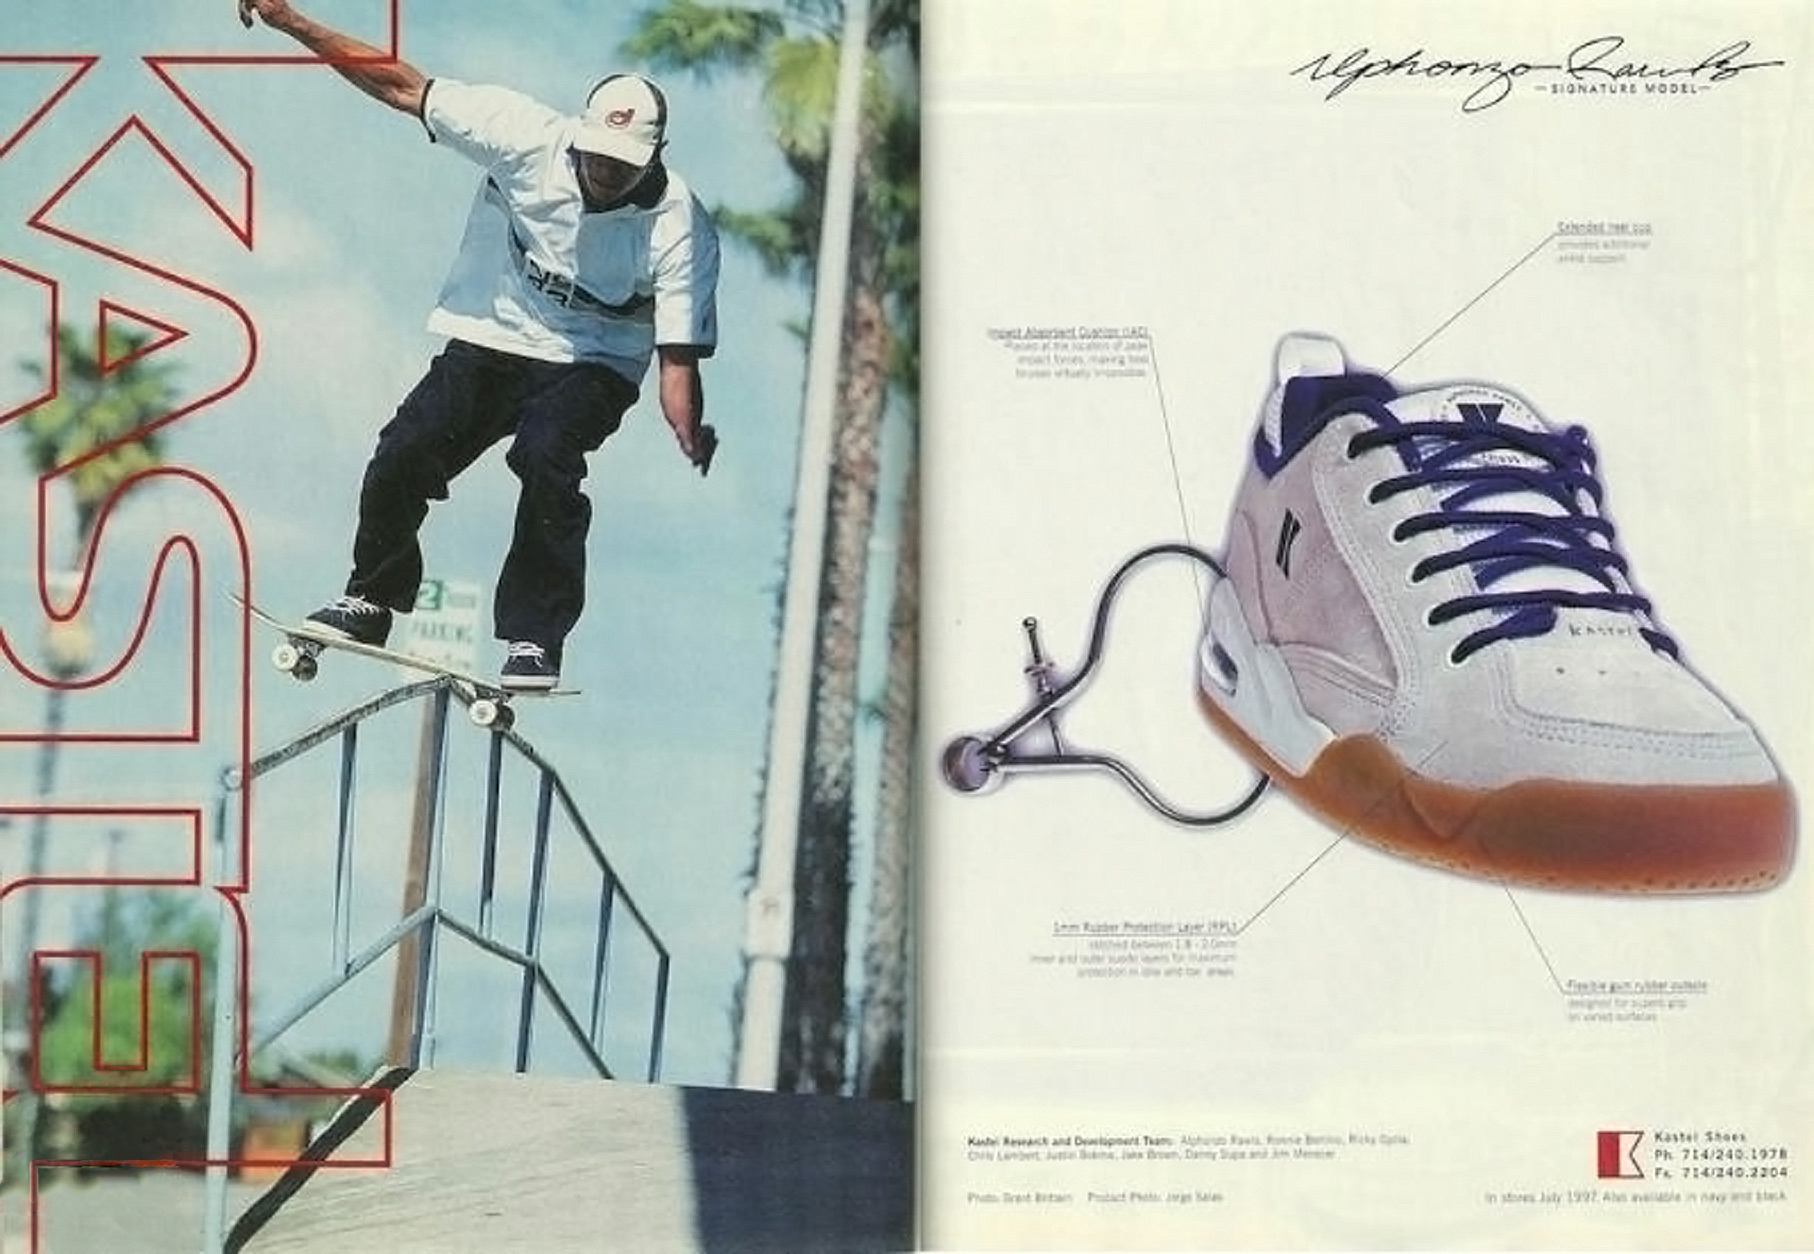 Alphonzo Rawls signature model, Kastel Shoes, 1996